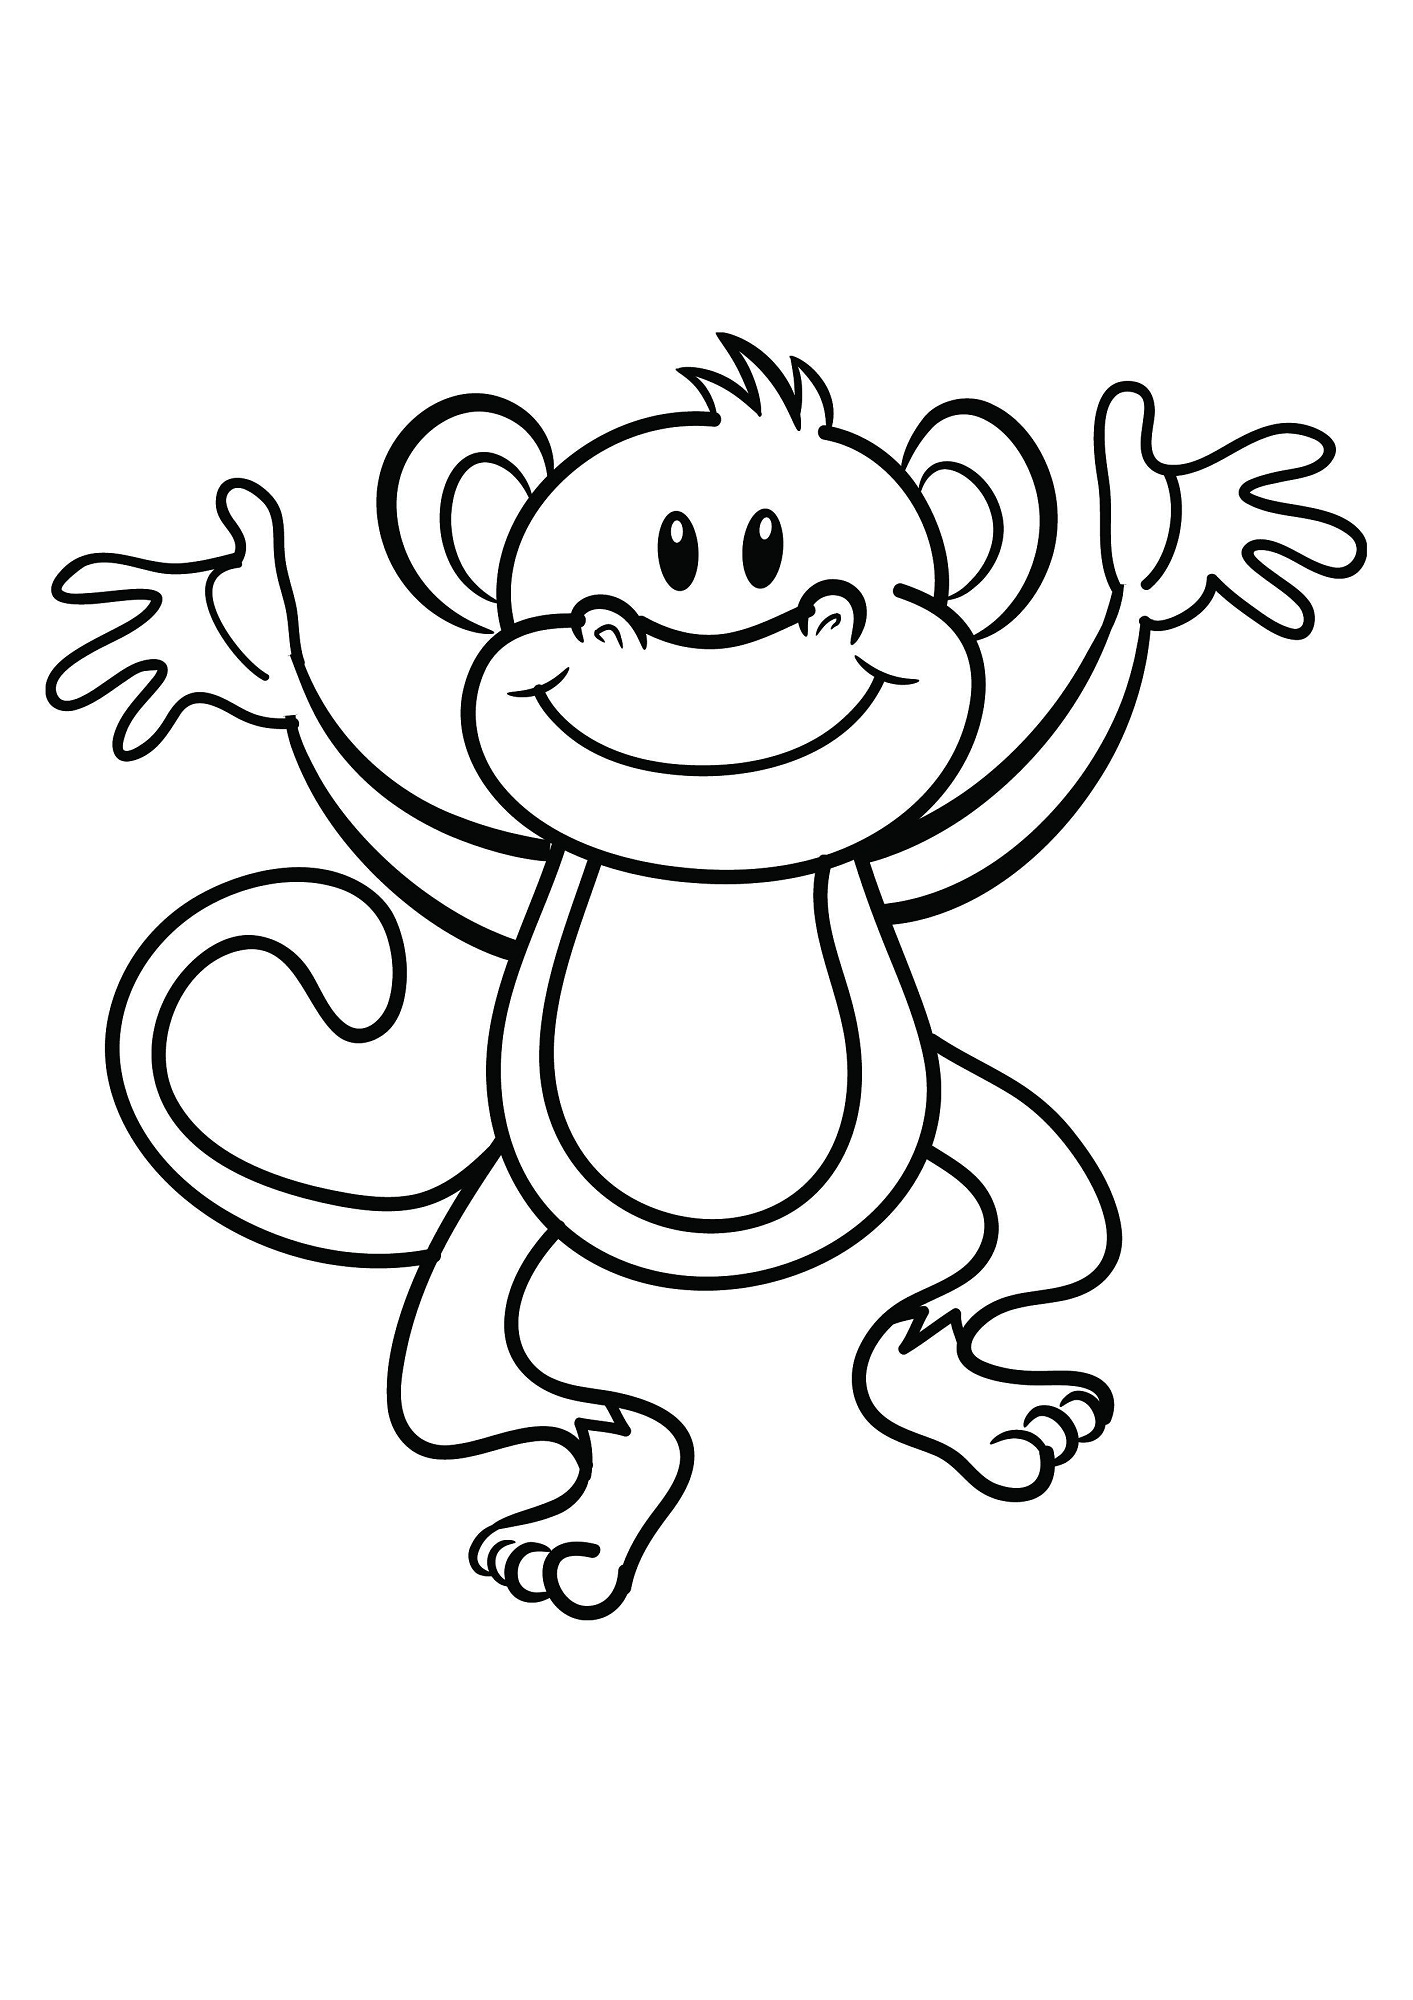 coloring pages of monkeys easy